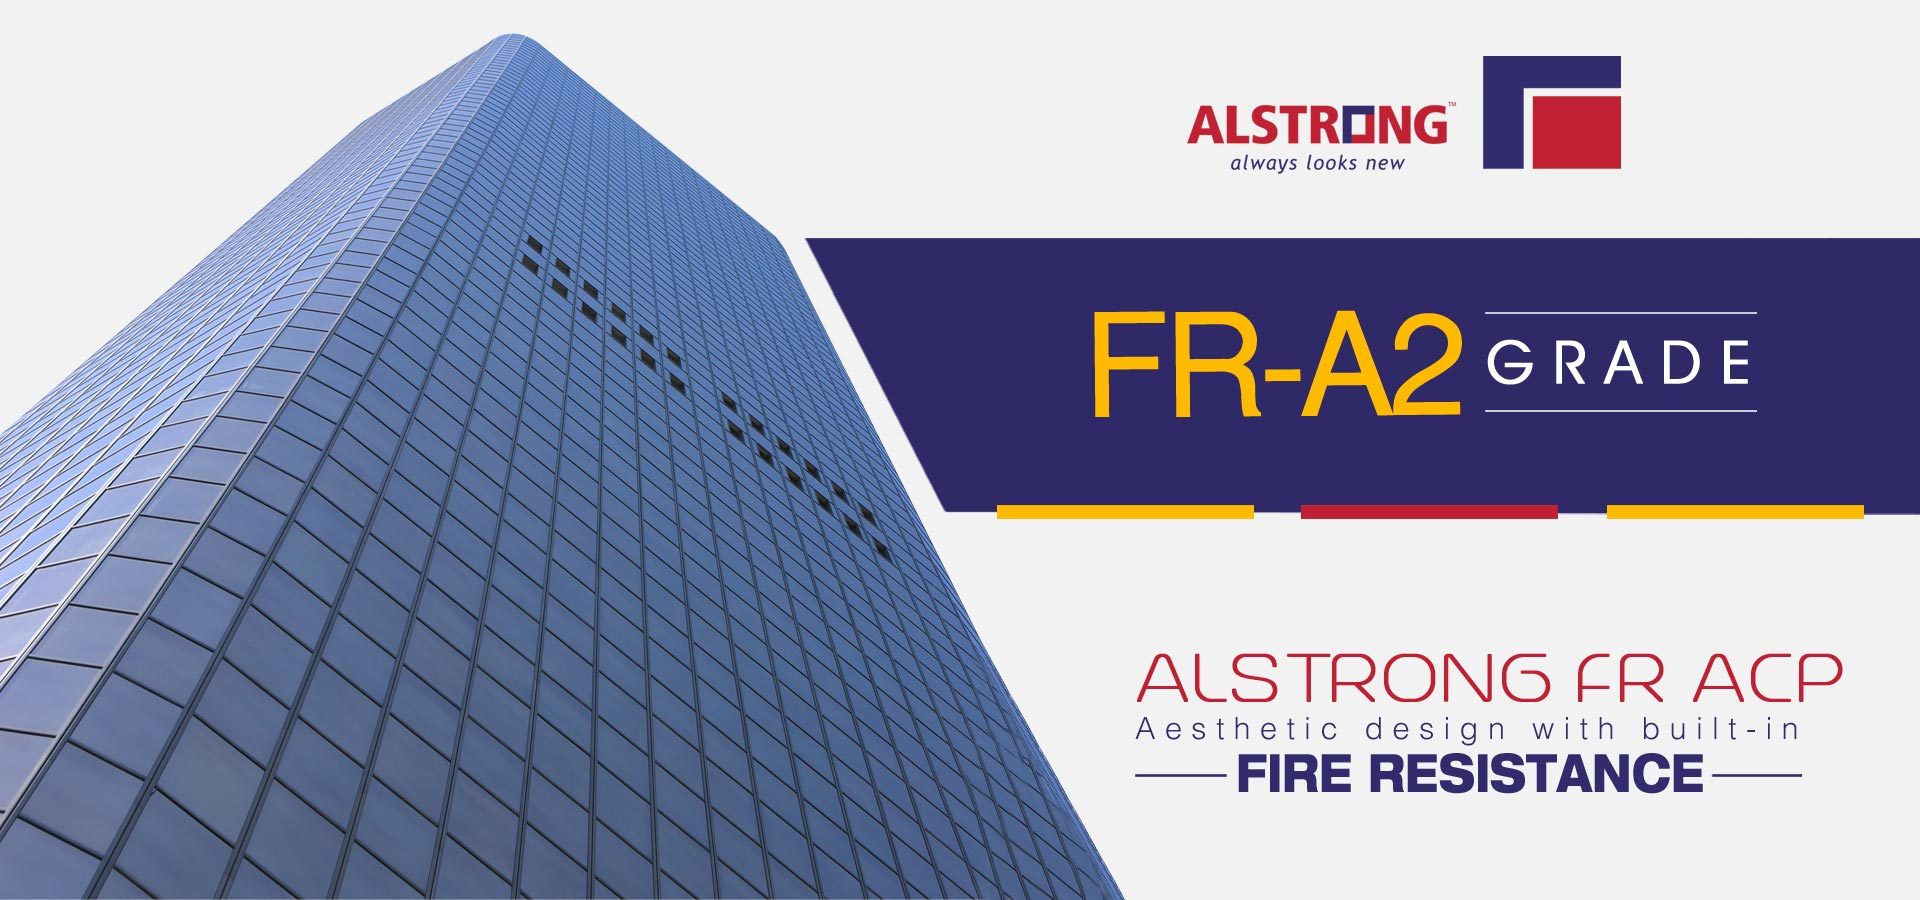 alstrong-fr-a2-fire-resistant-acp-panel